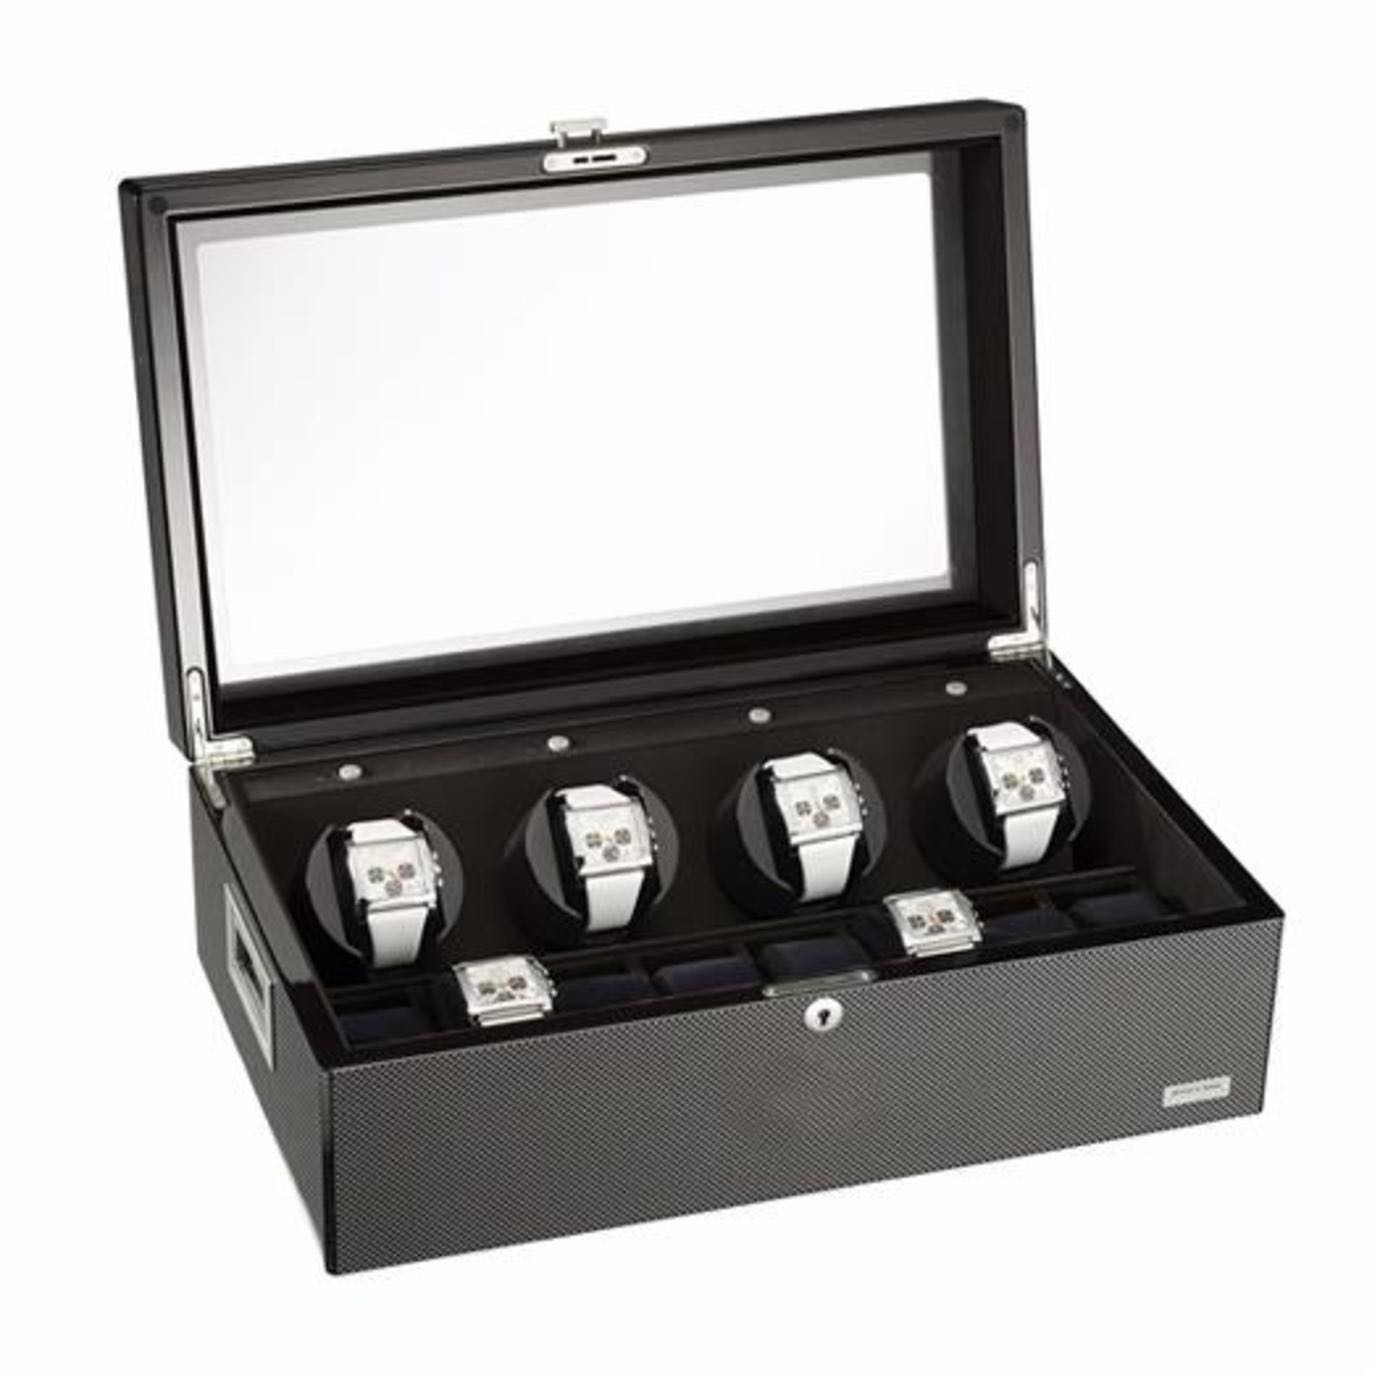 Mitch & Marc 4 Watch Winder (with handles)